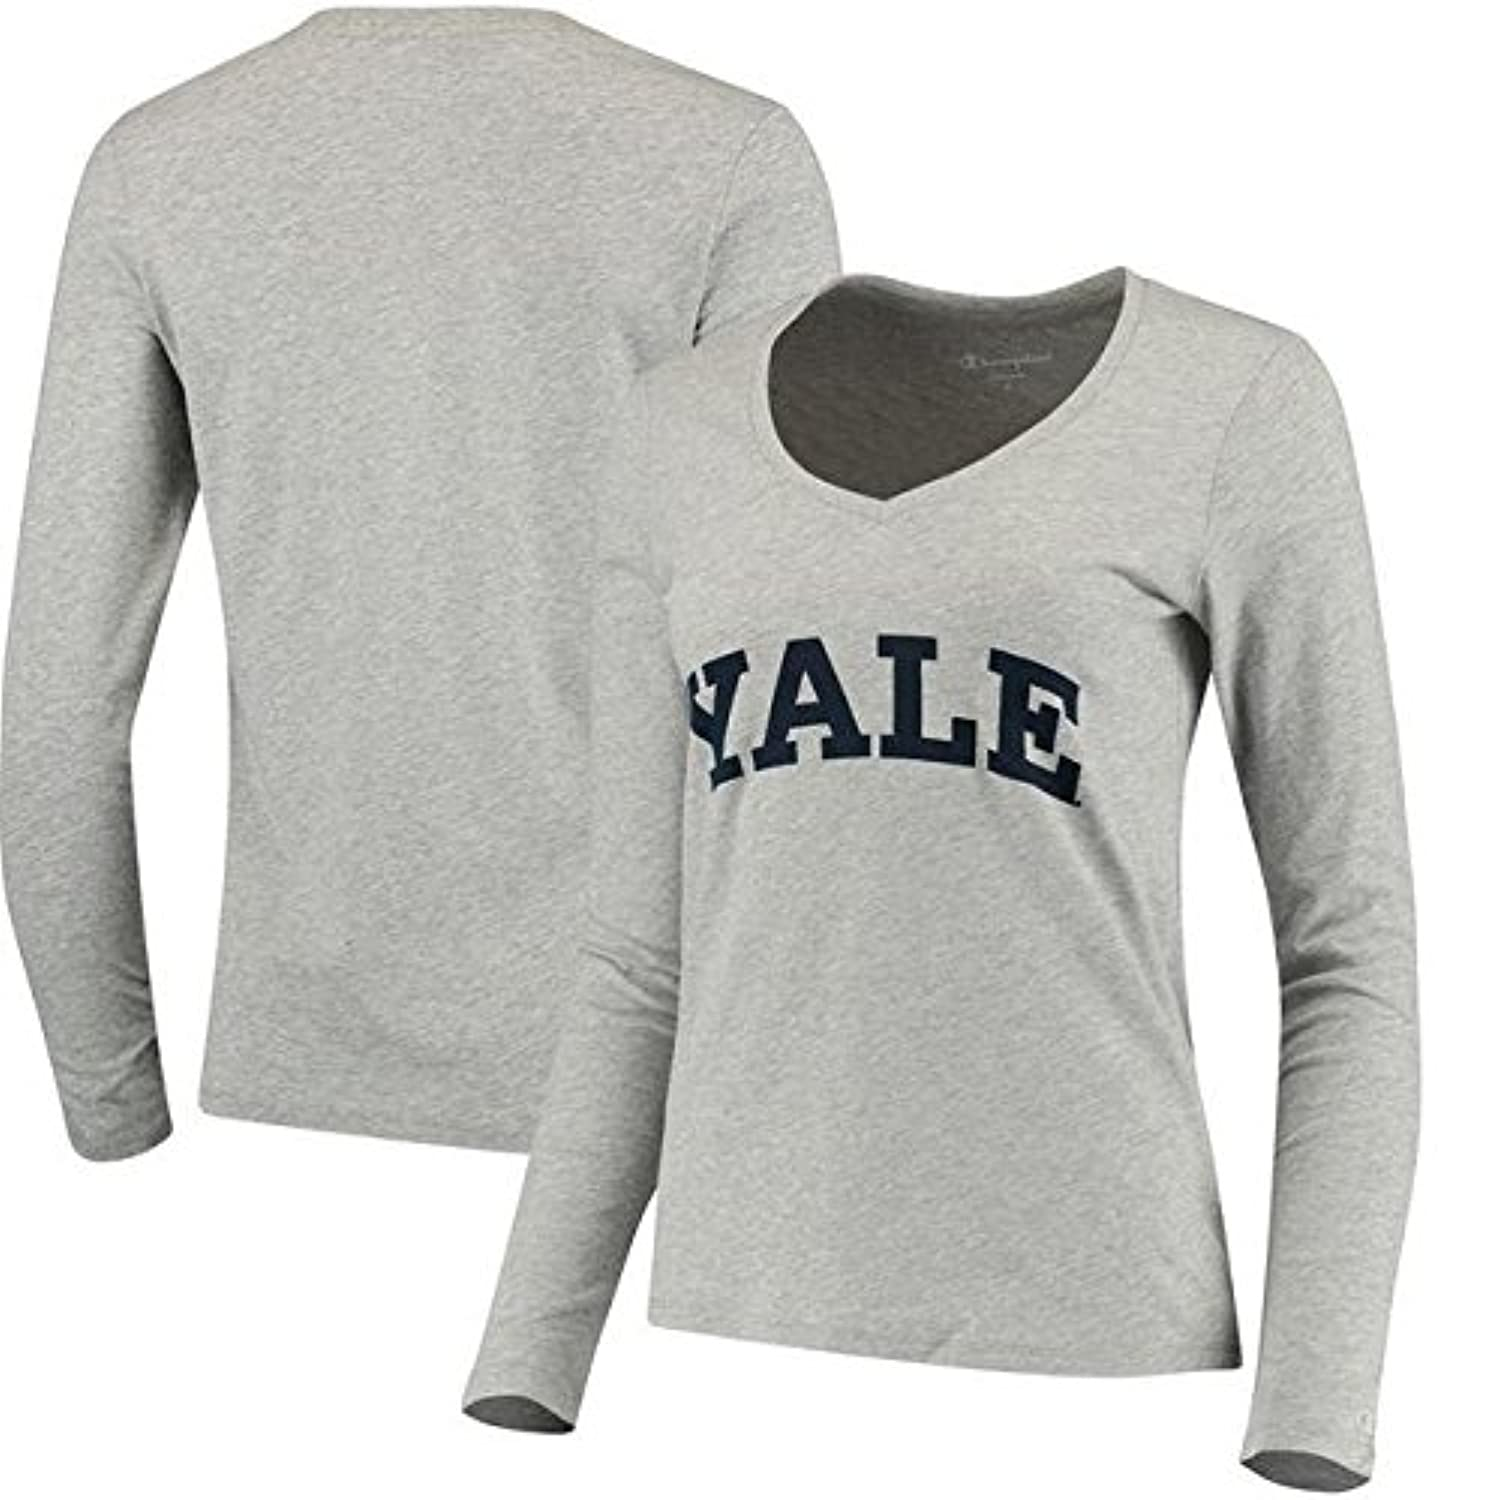 Champion Champion Yale Bulldogs Women's Heathered Gray Basic Arch V-Neck Long Sleeve T-Shirt スポーツ用品 【並行輸入品】